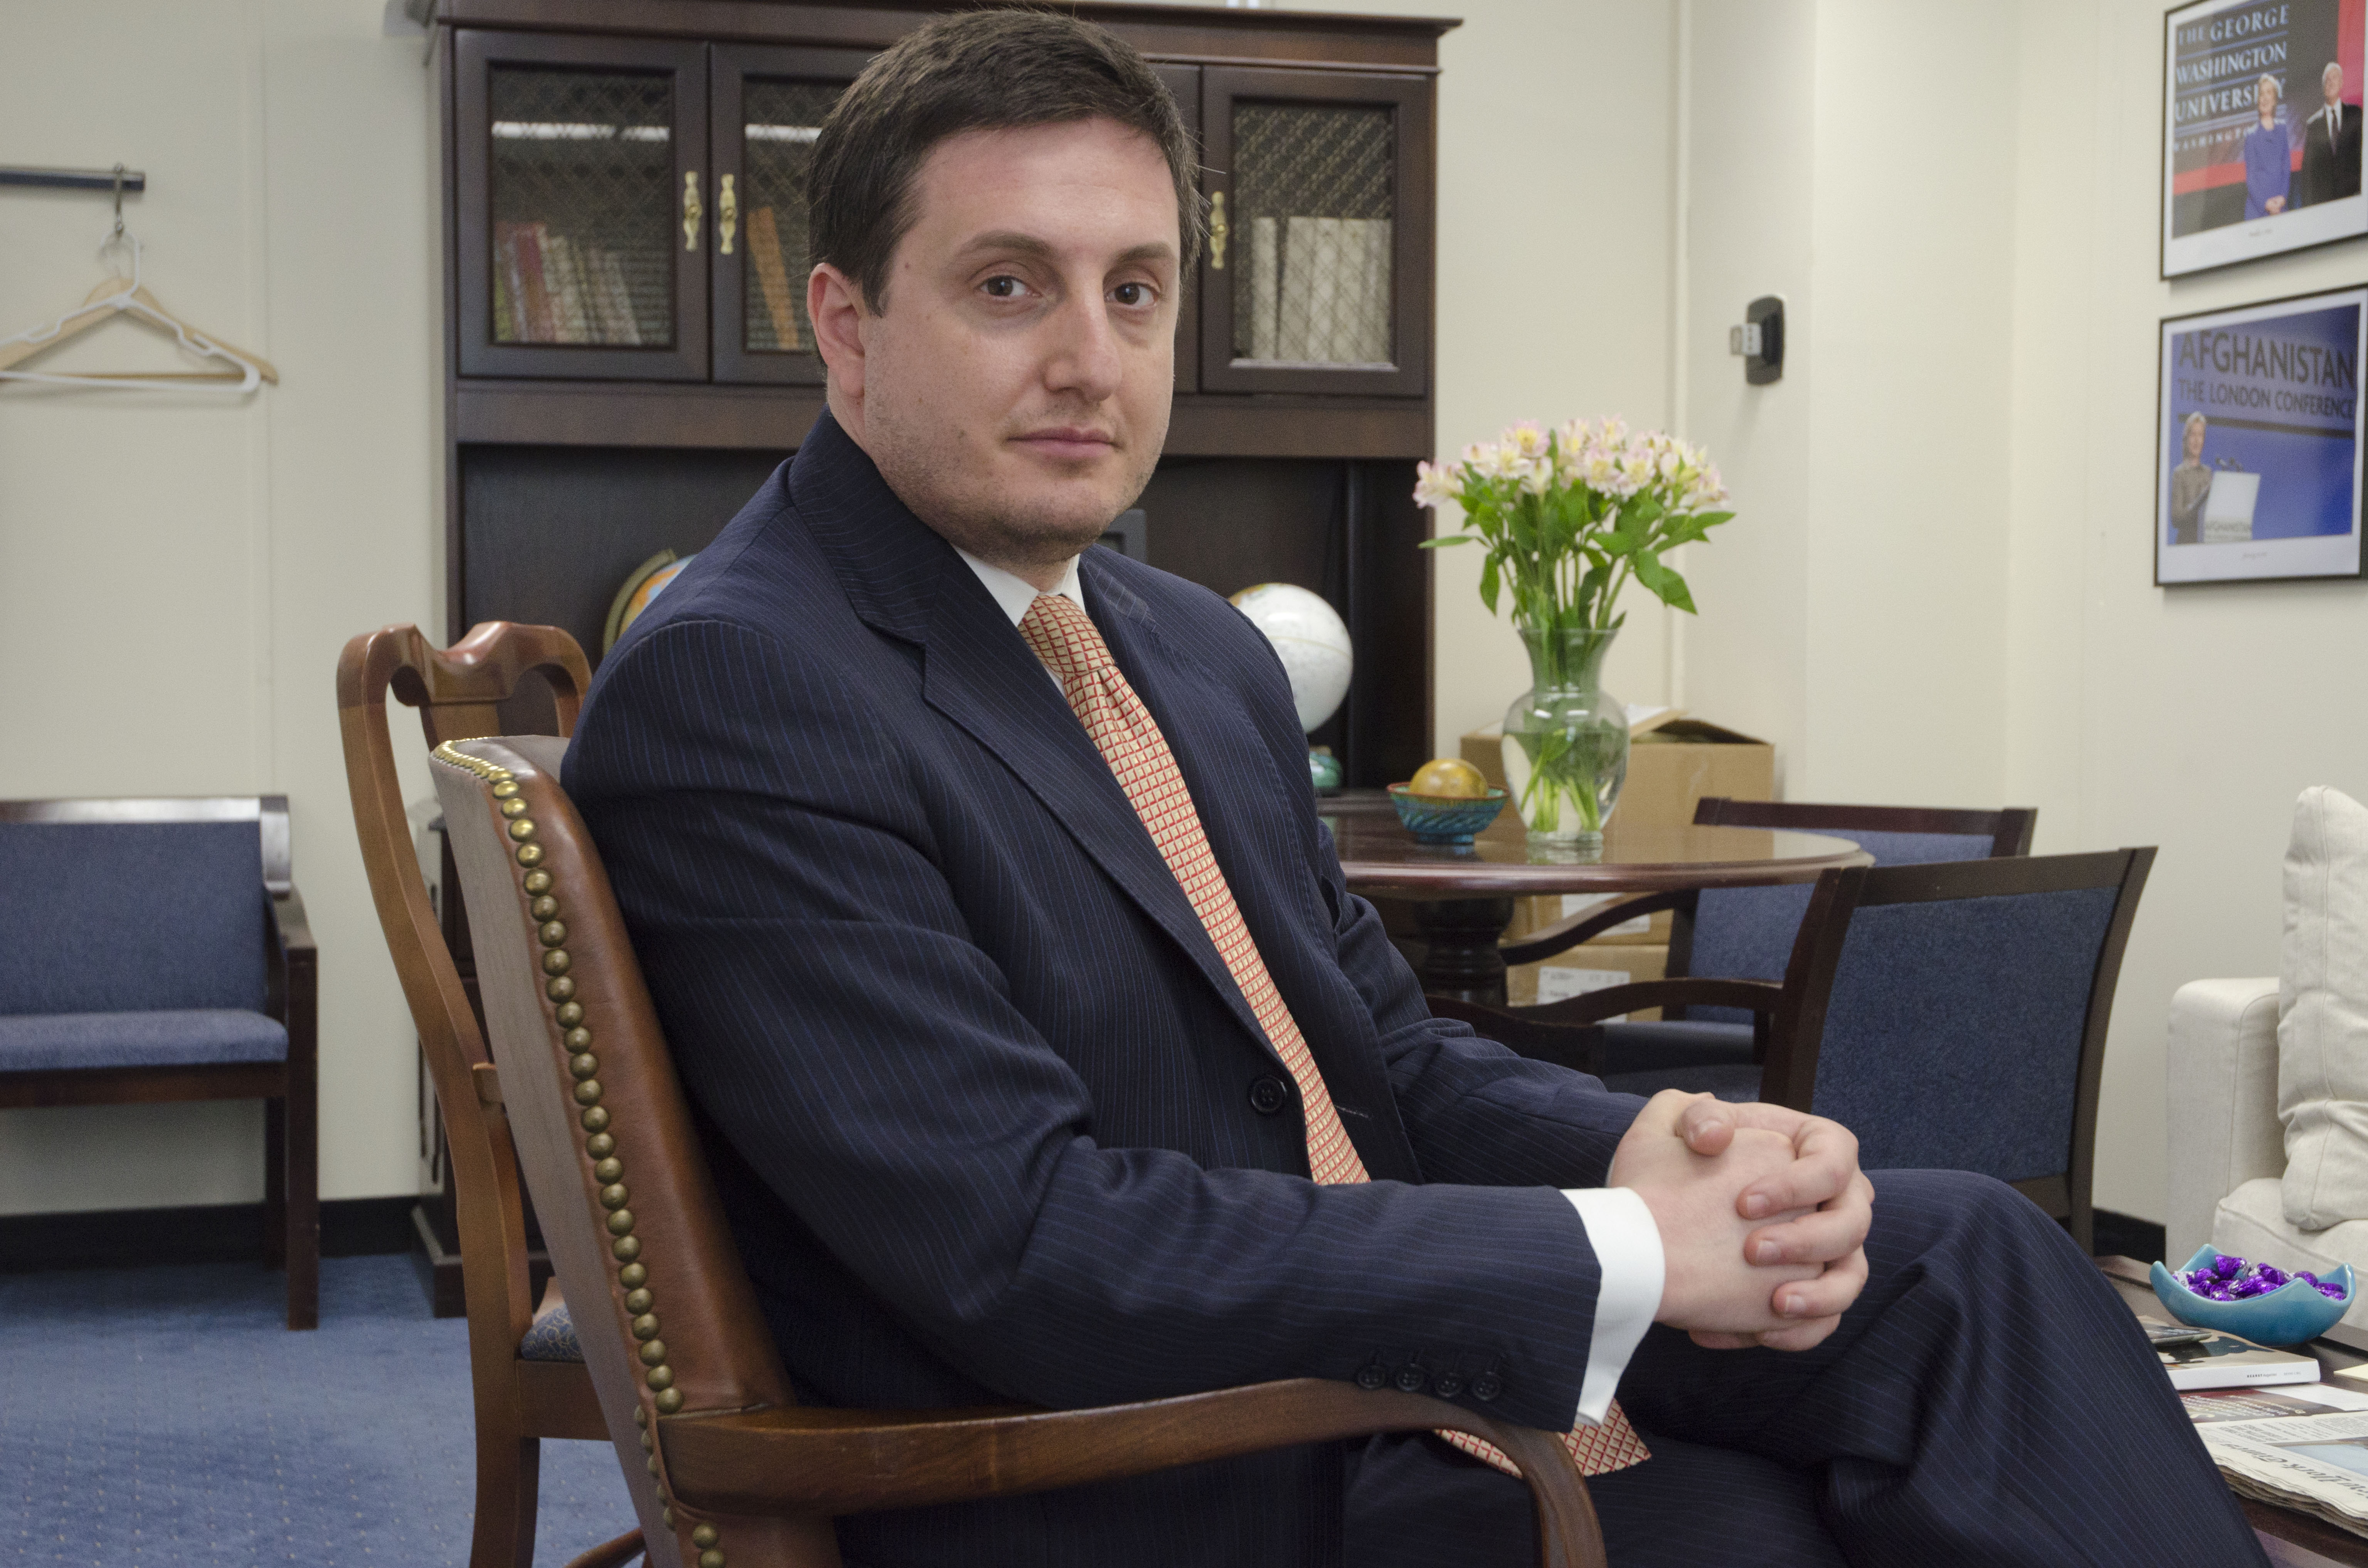 Philippe I. Reines - joined the State Department as a Senior Advisor to United States Secretary of State Hillary Clinton when she was sworn into office in January 2009, and was later promoted to the position of Deputy Assistant Secretary of State.